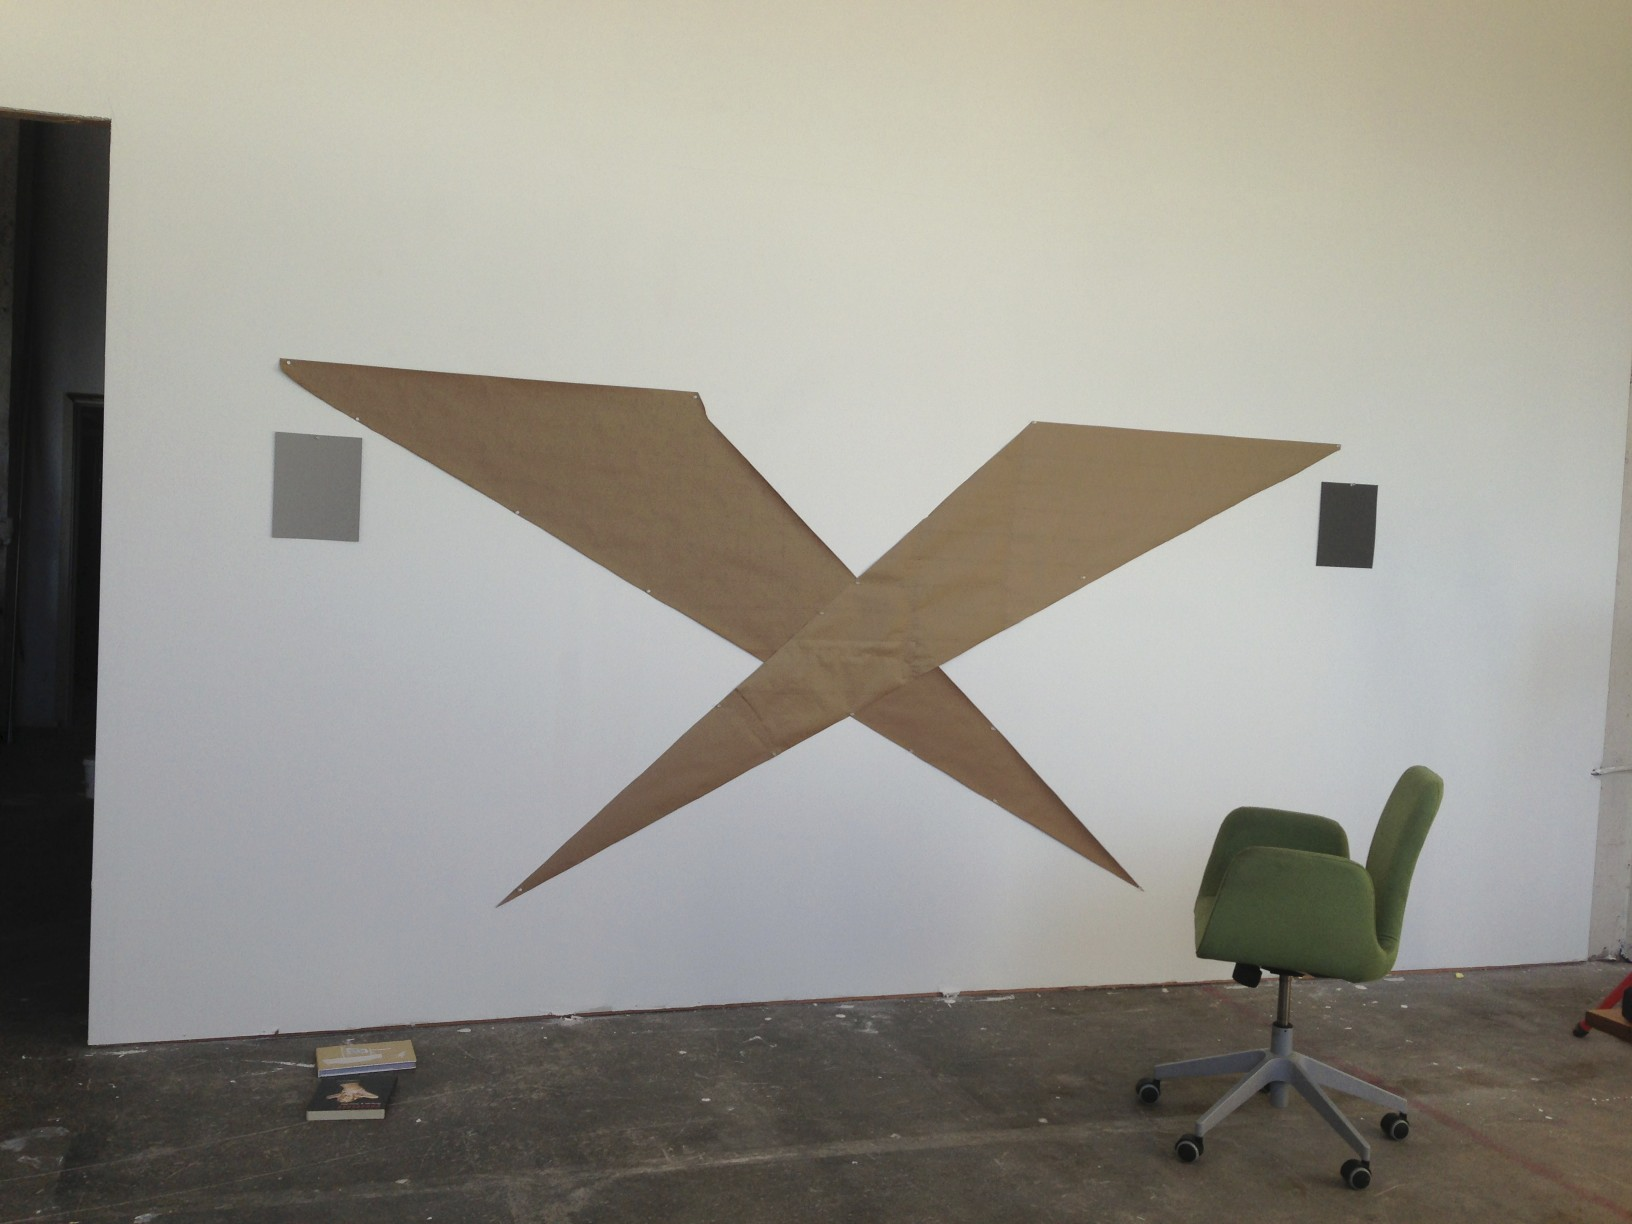 Marisa-Green-Intersect-Installation-Process-1.jpg